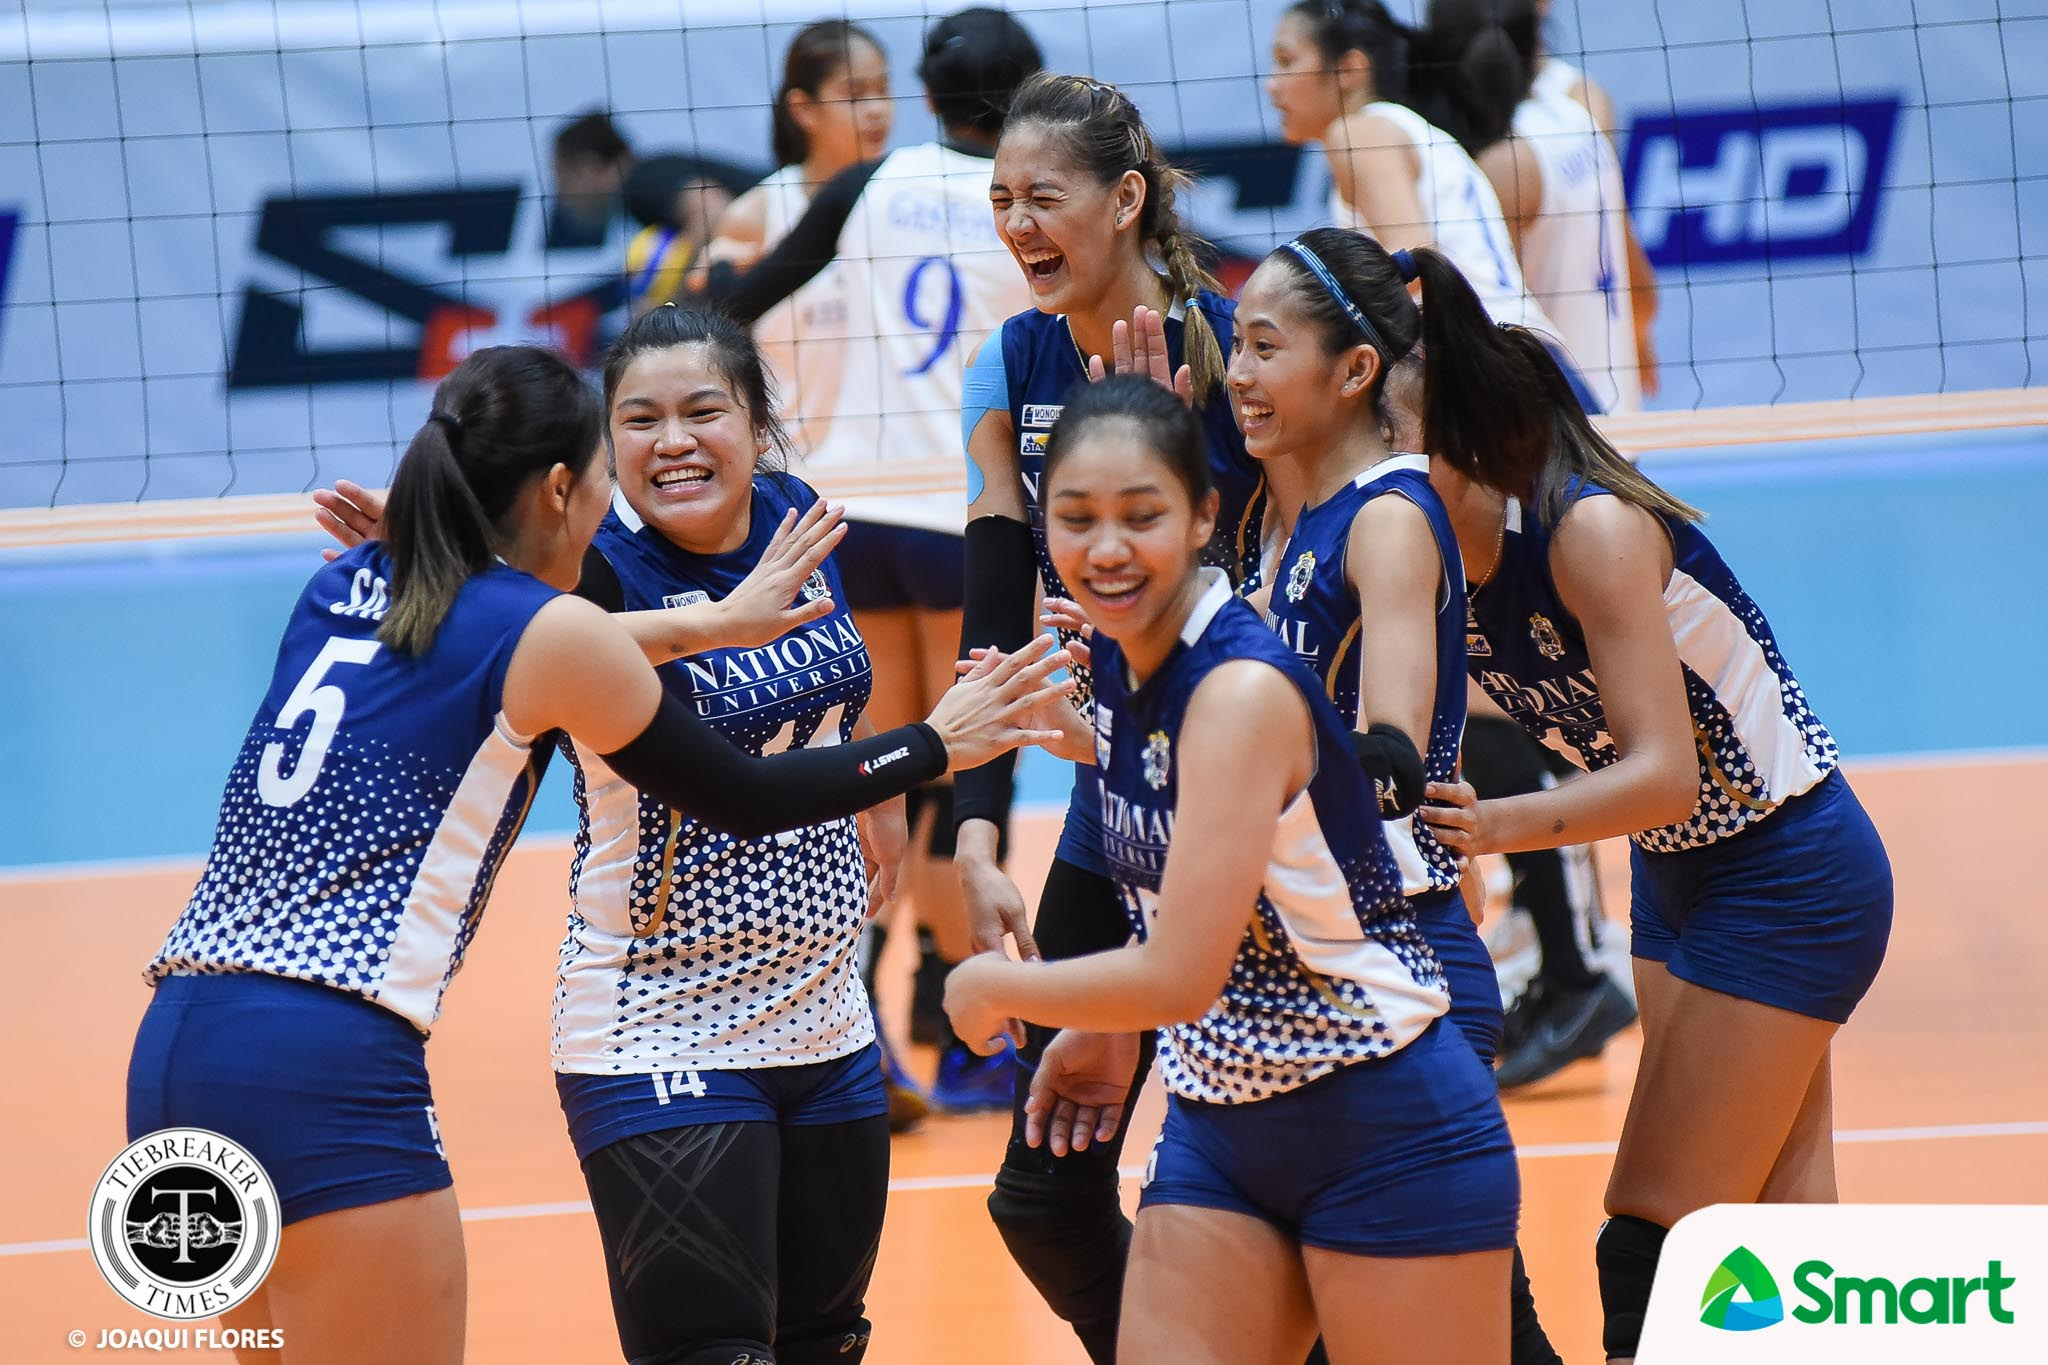 UAAP-80-Volleyball-NU-vs.-ADMU-Santiago-8708 Babes Castillo proud of Lady Bulldogs after character-building victory News NU UAAP Volleyball  - philippine sports news